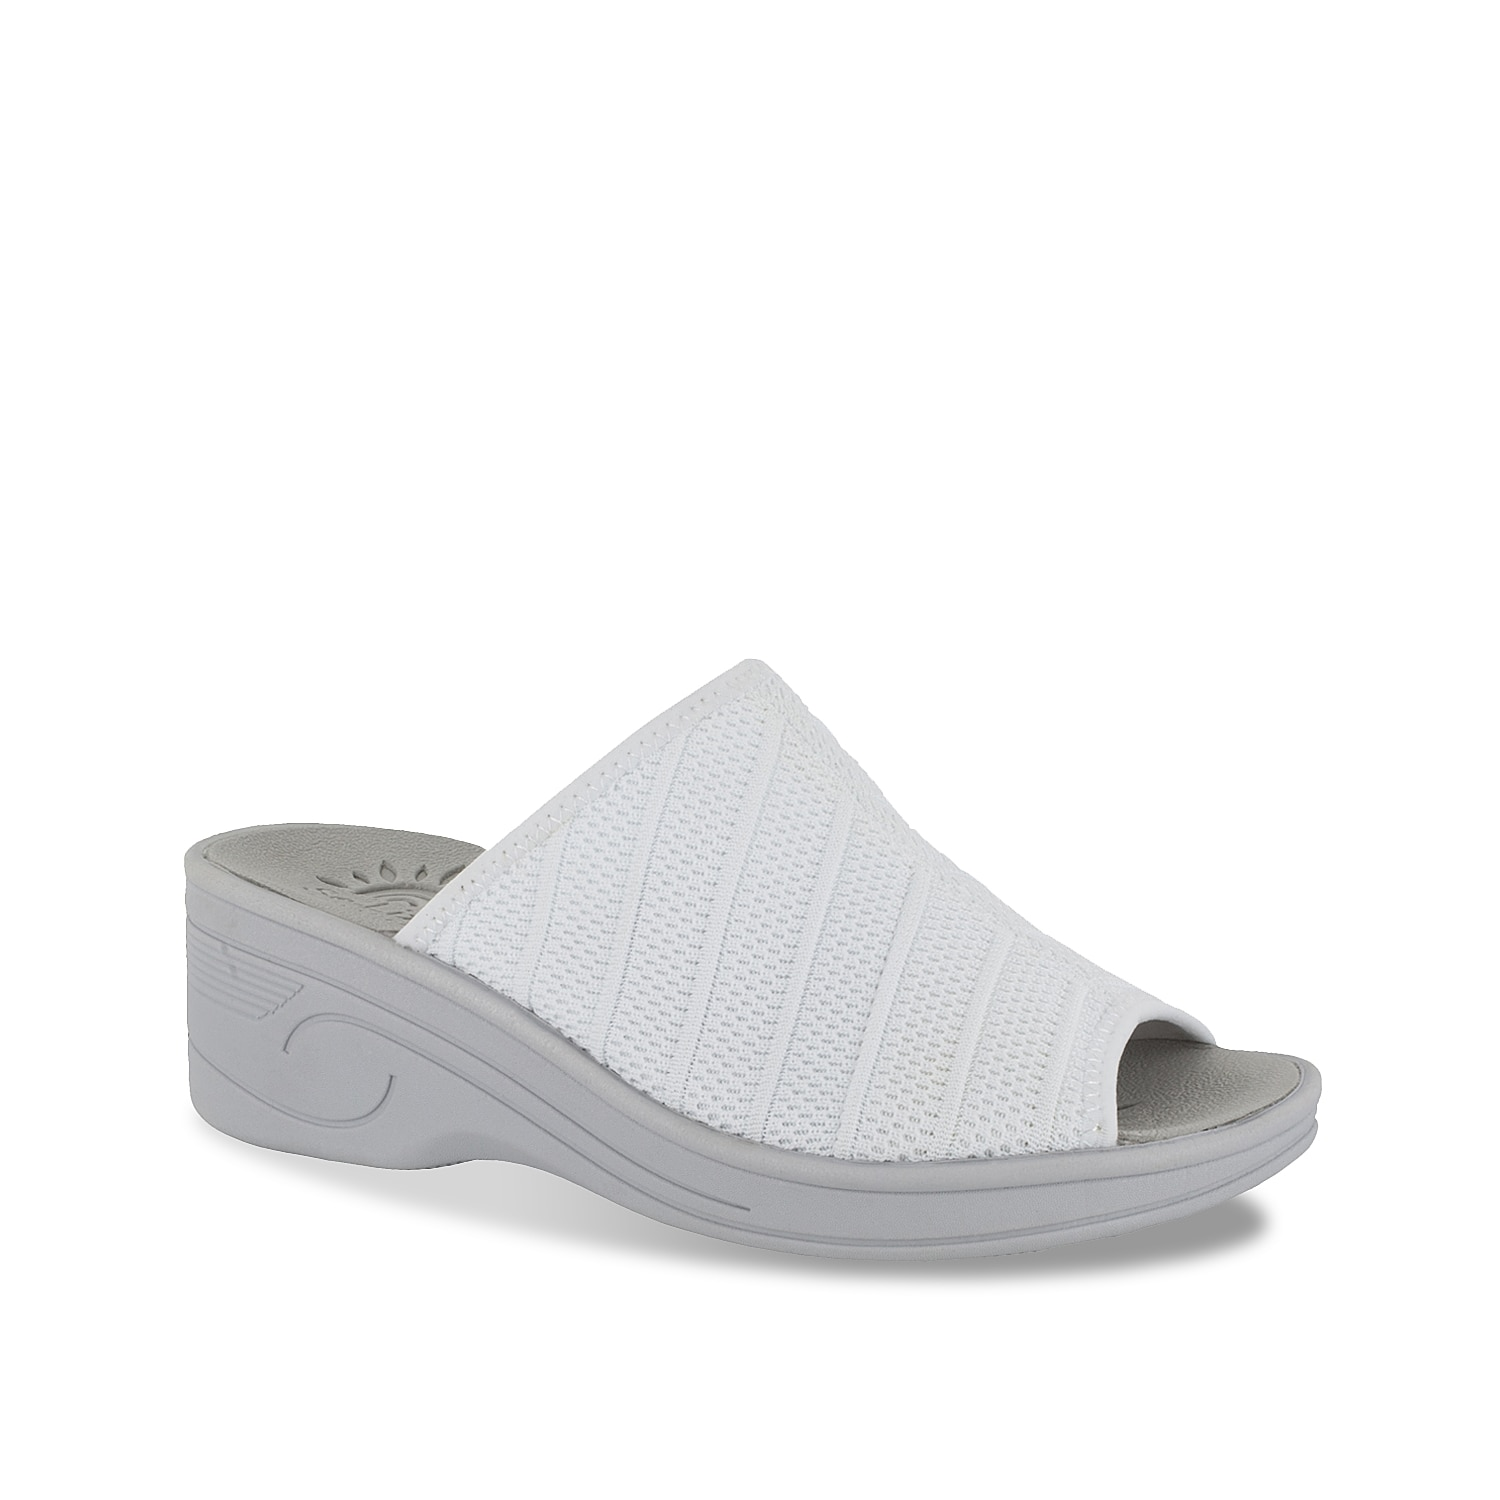 The Airy sandal from Easy Street will add a pop to your warm-weather look. These wedges feature a stretchy upper and SoLite cushioned footbed for effortless comfort.